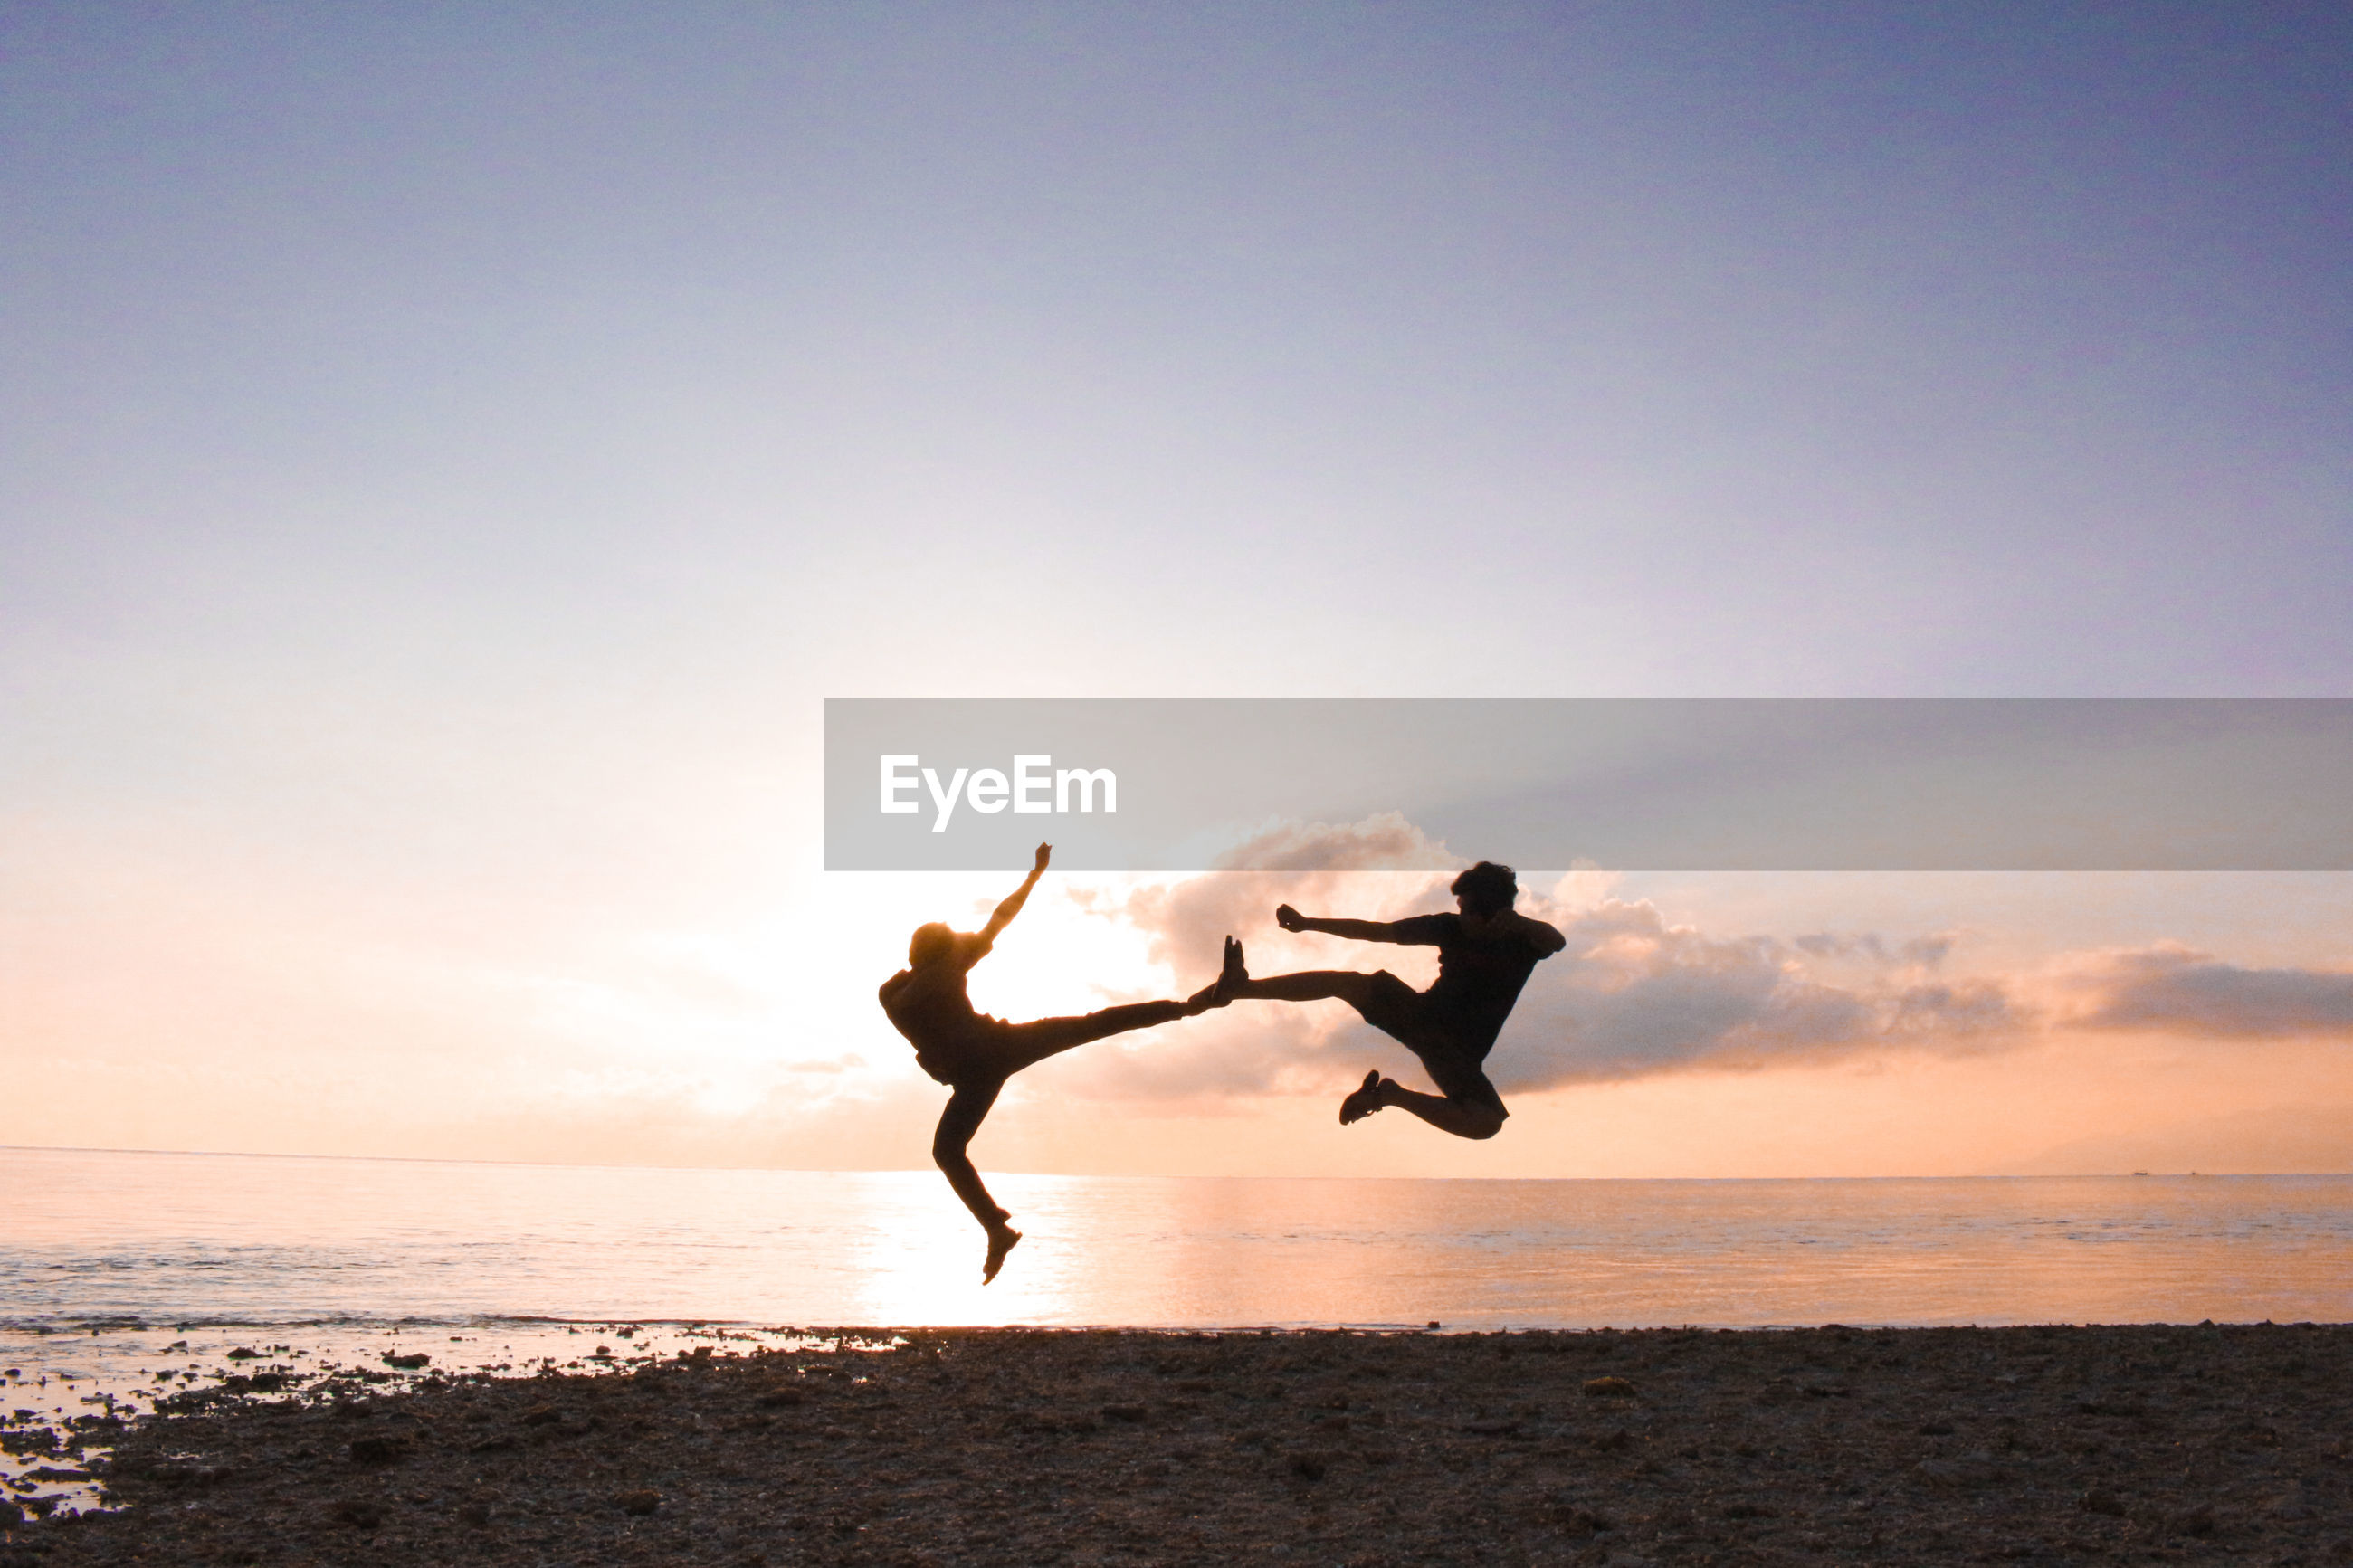 Silhouette men jumping at beach against sky during sunset